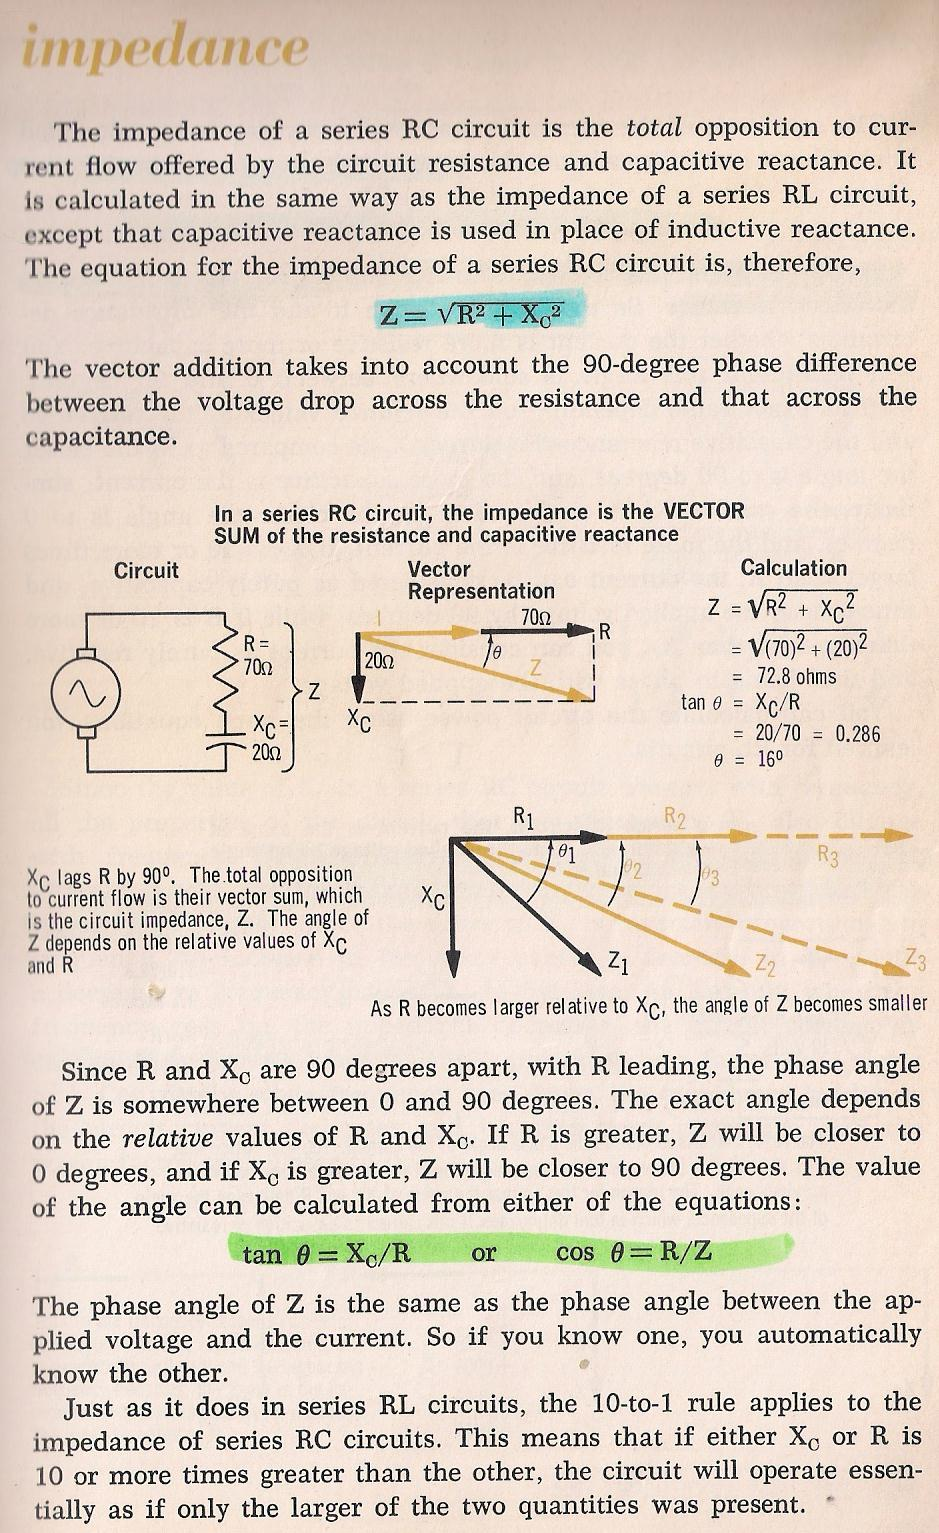 Rlc Circuits The Capacitive Reactance And Circuit Impedance Is Calculated As 028 By Larry E Gugle K4rfe